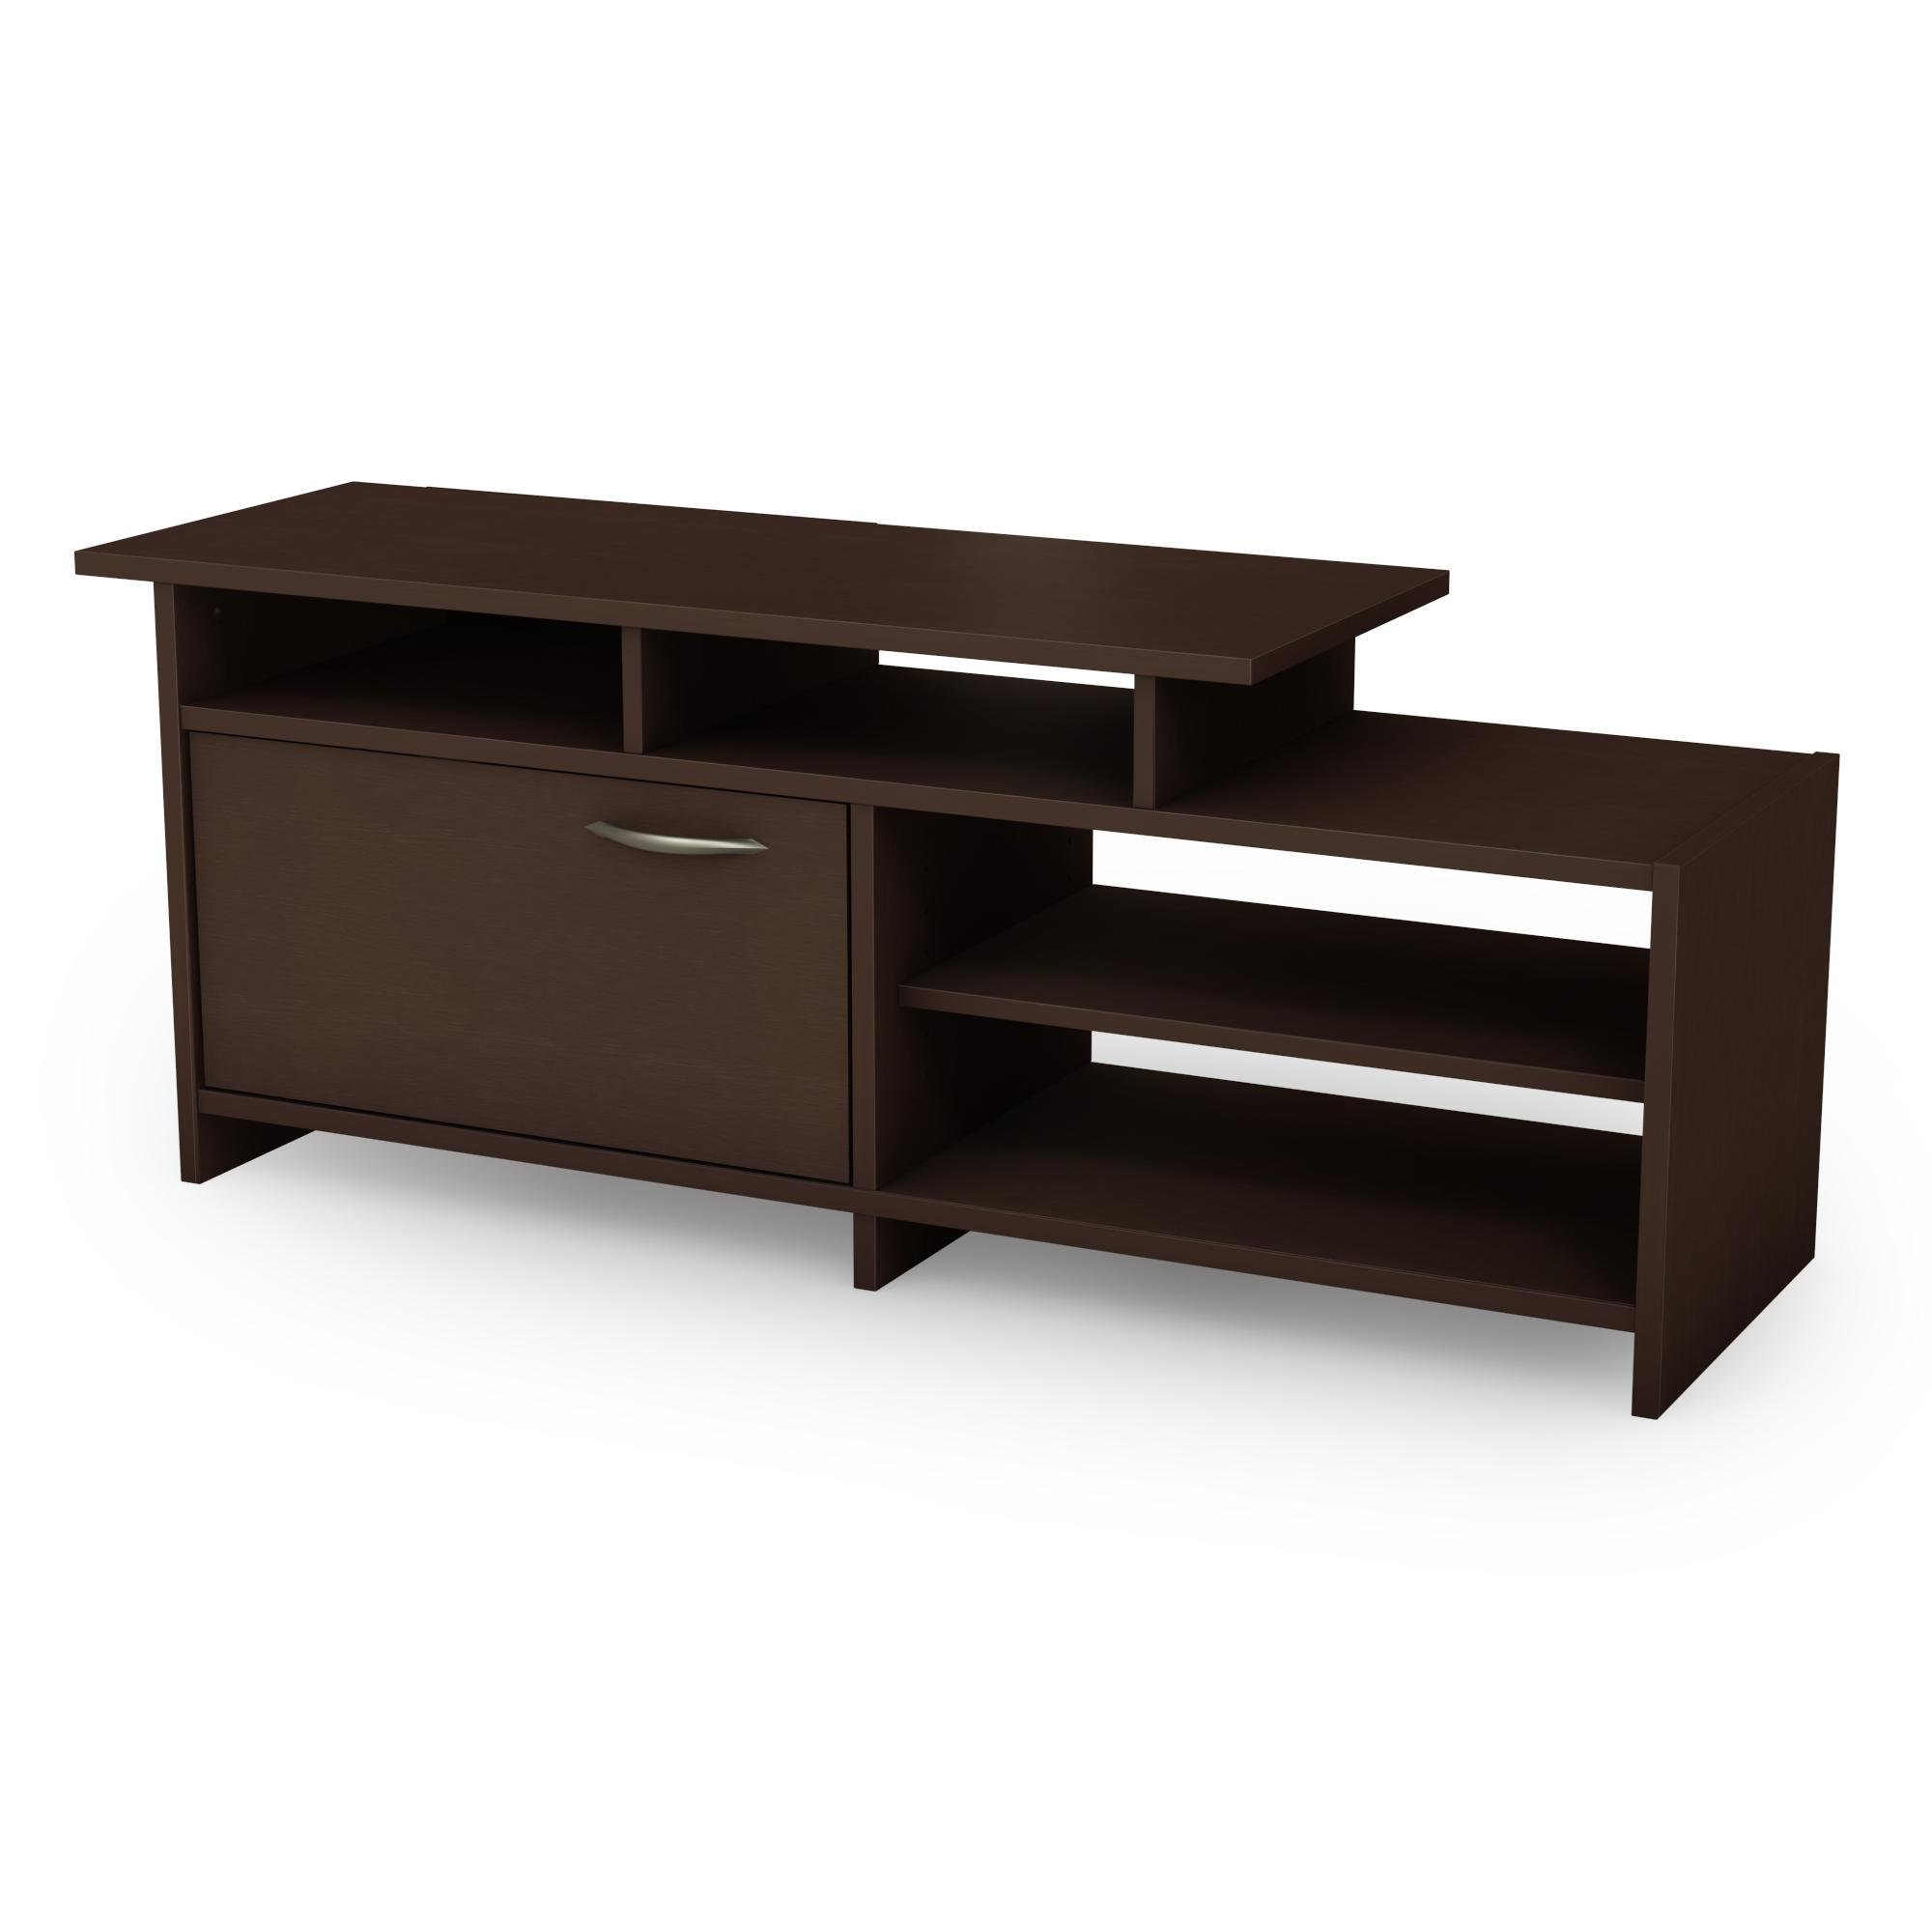 Step One TV stand